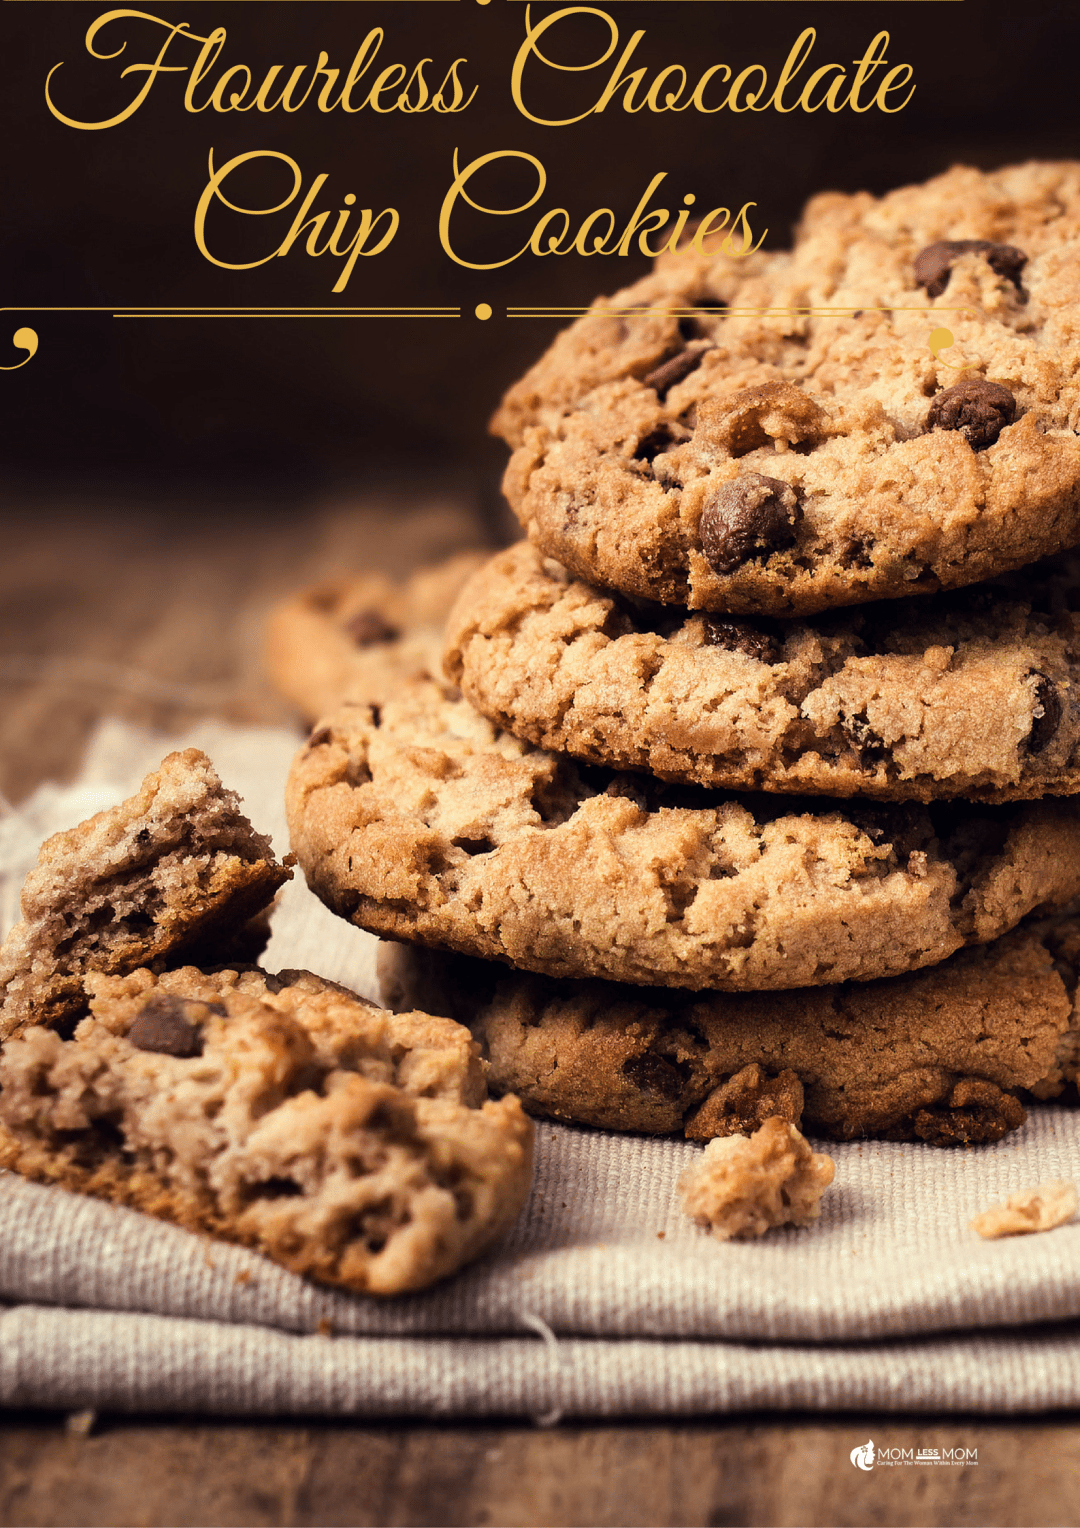 Flourless Chocolate Chip Cookies Recipe